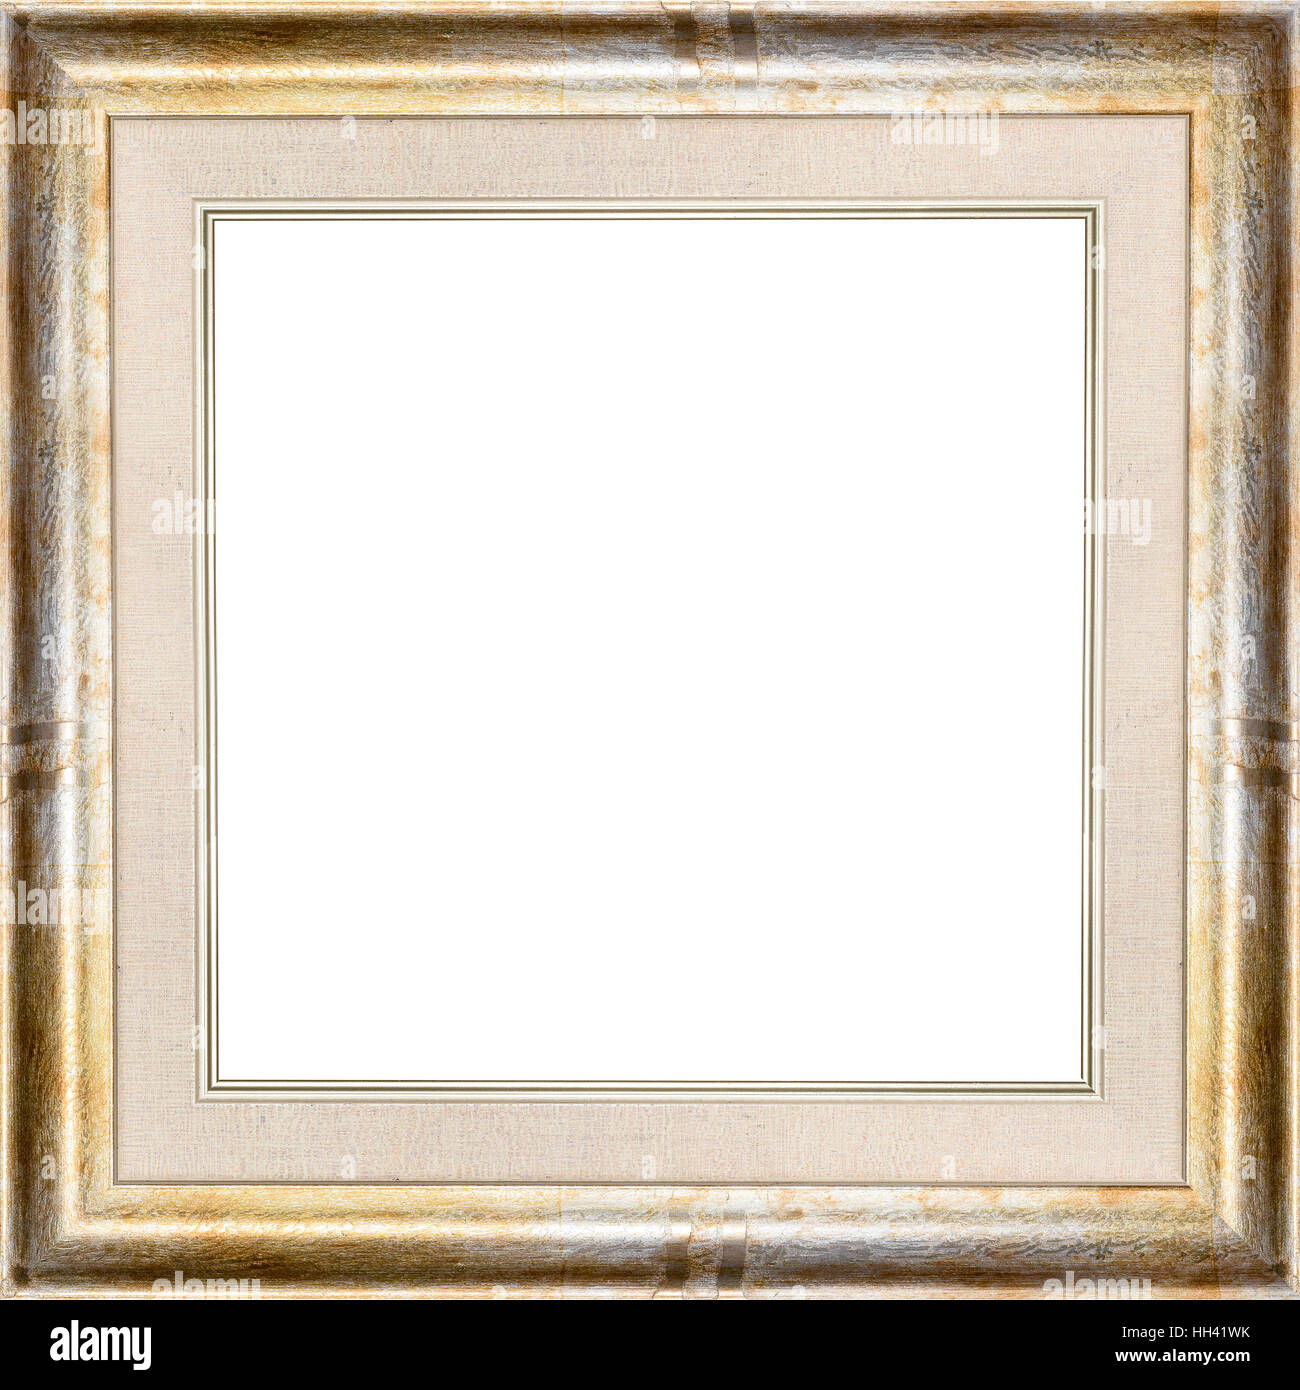 Wooden golden vintage picture frame isolated on white background ...